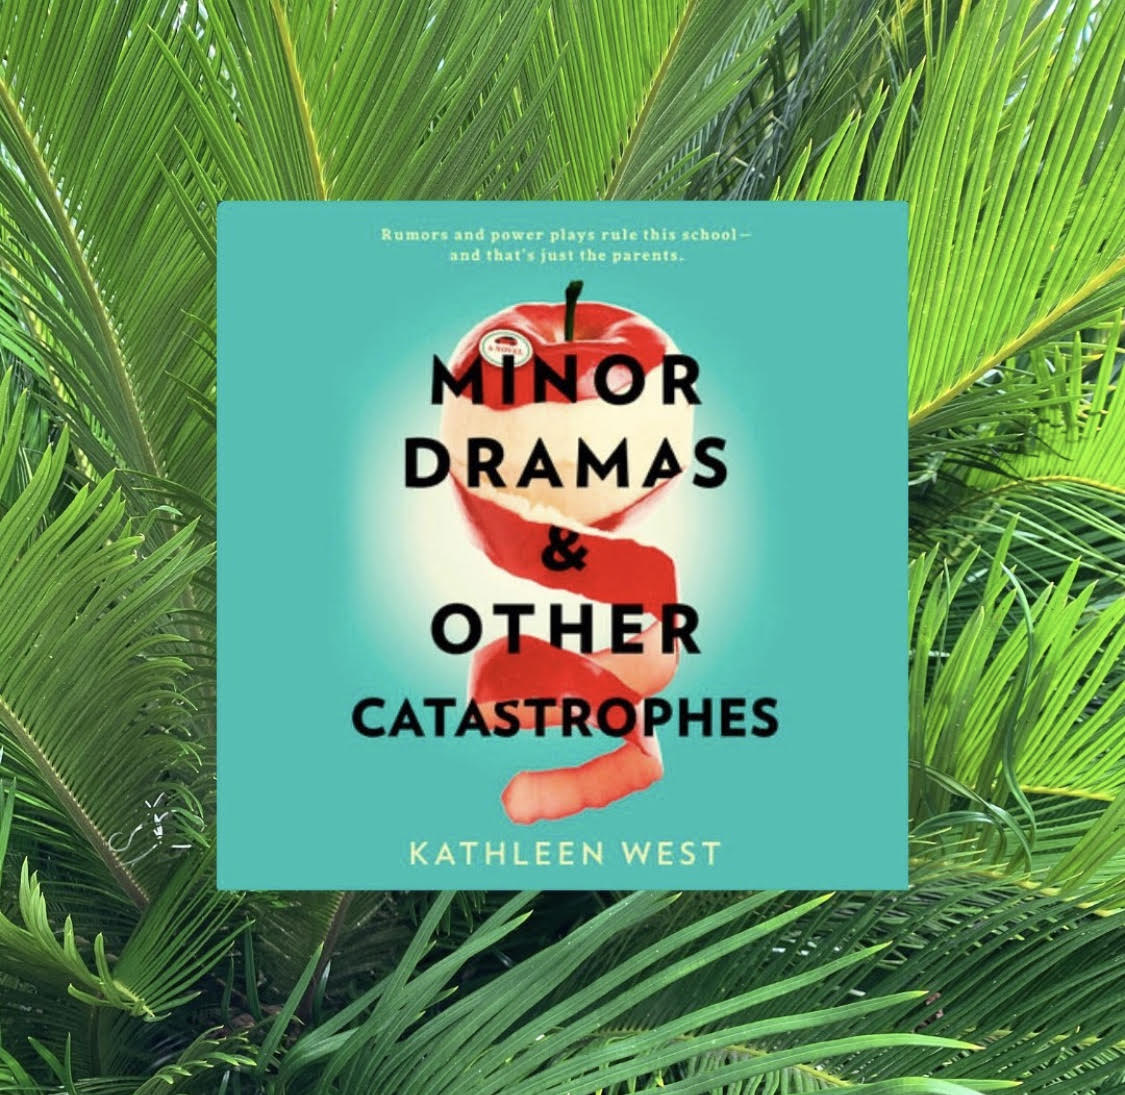 minor dramas and other catastrophes